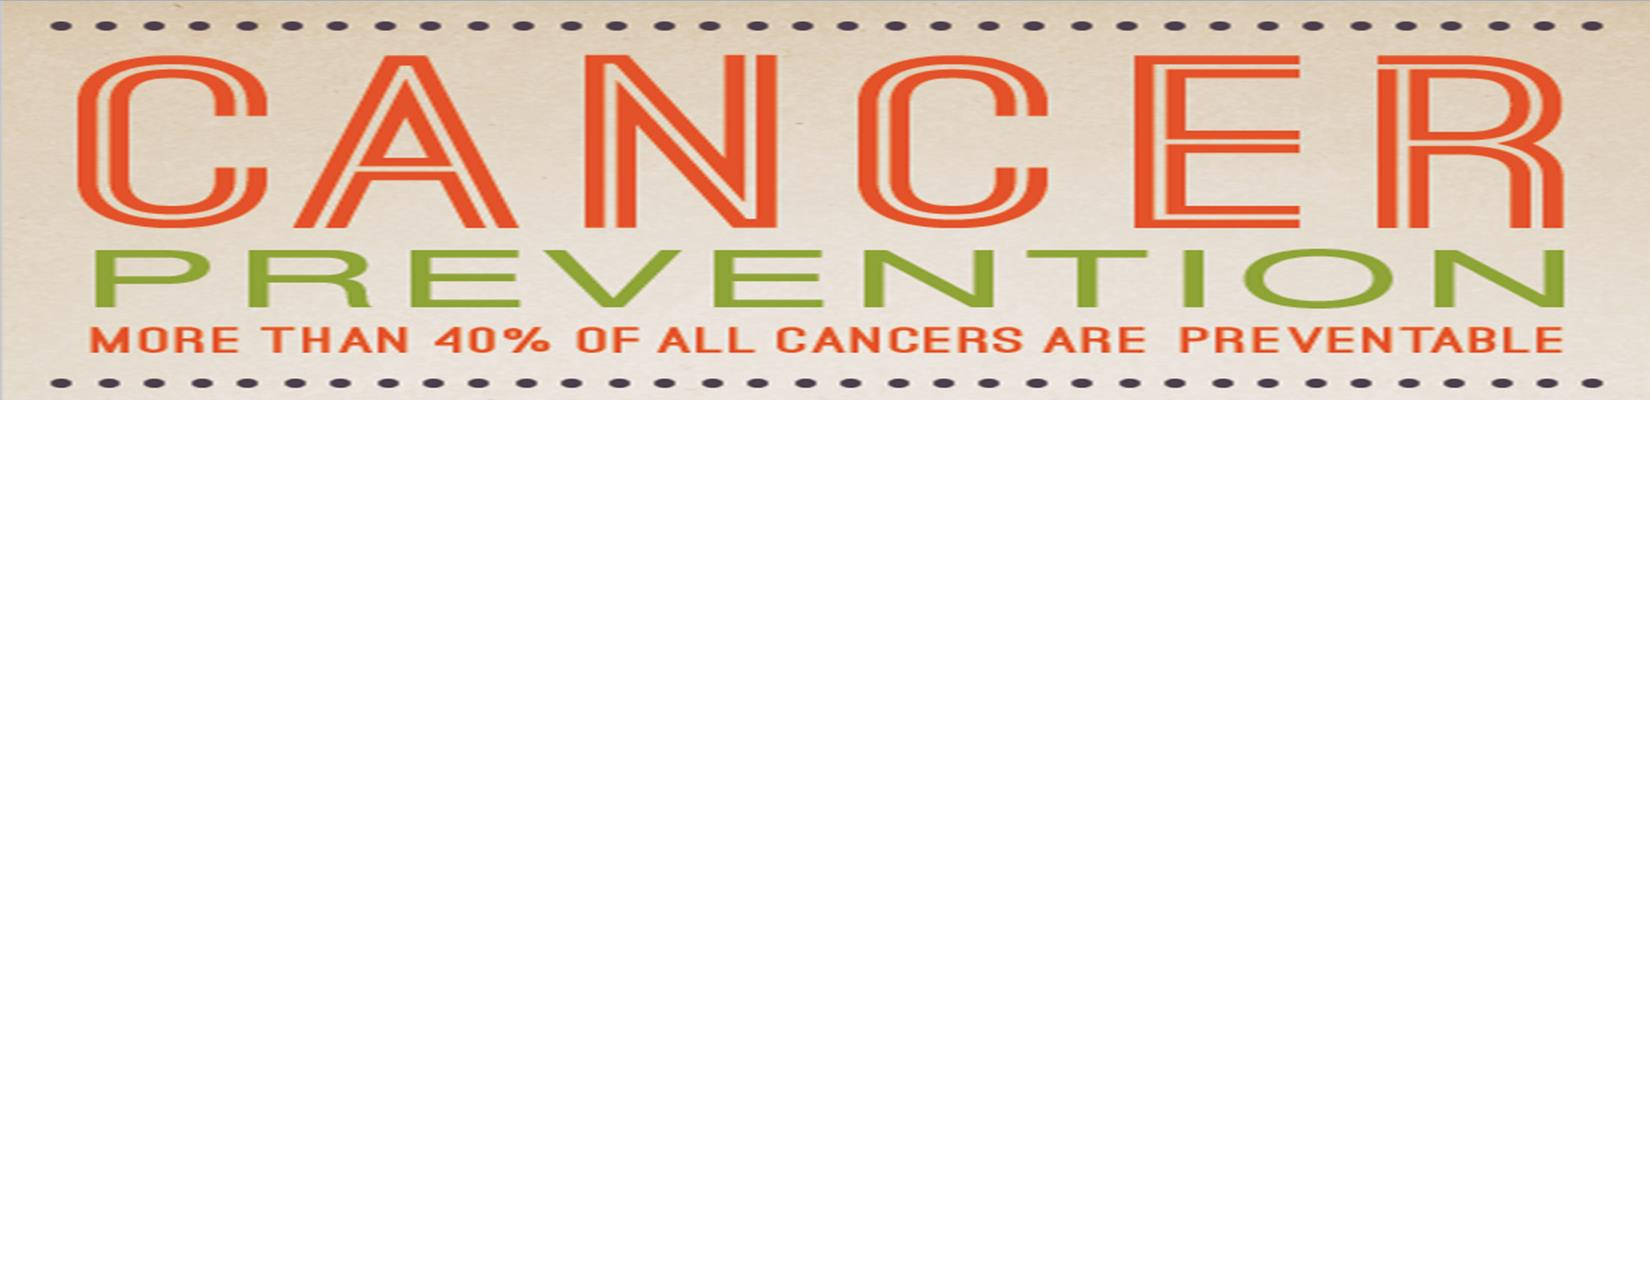 Cancer Prevention Rack Card Now Available